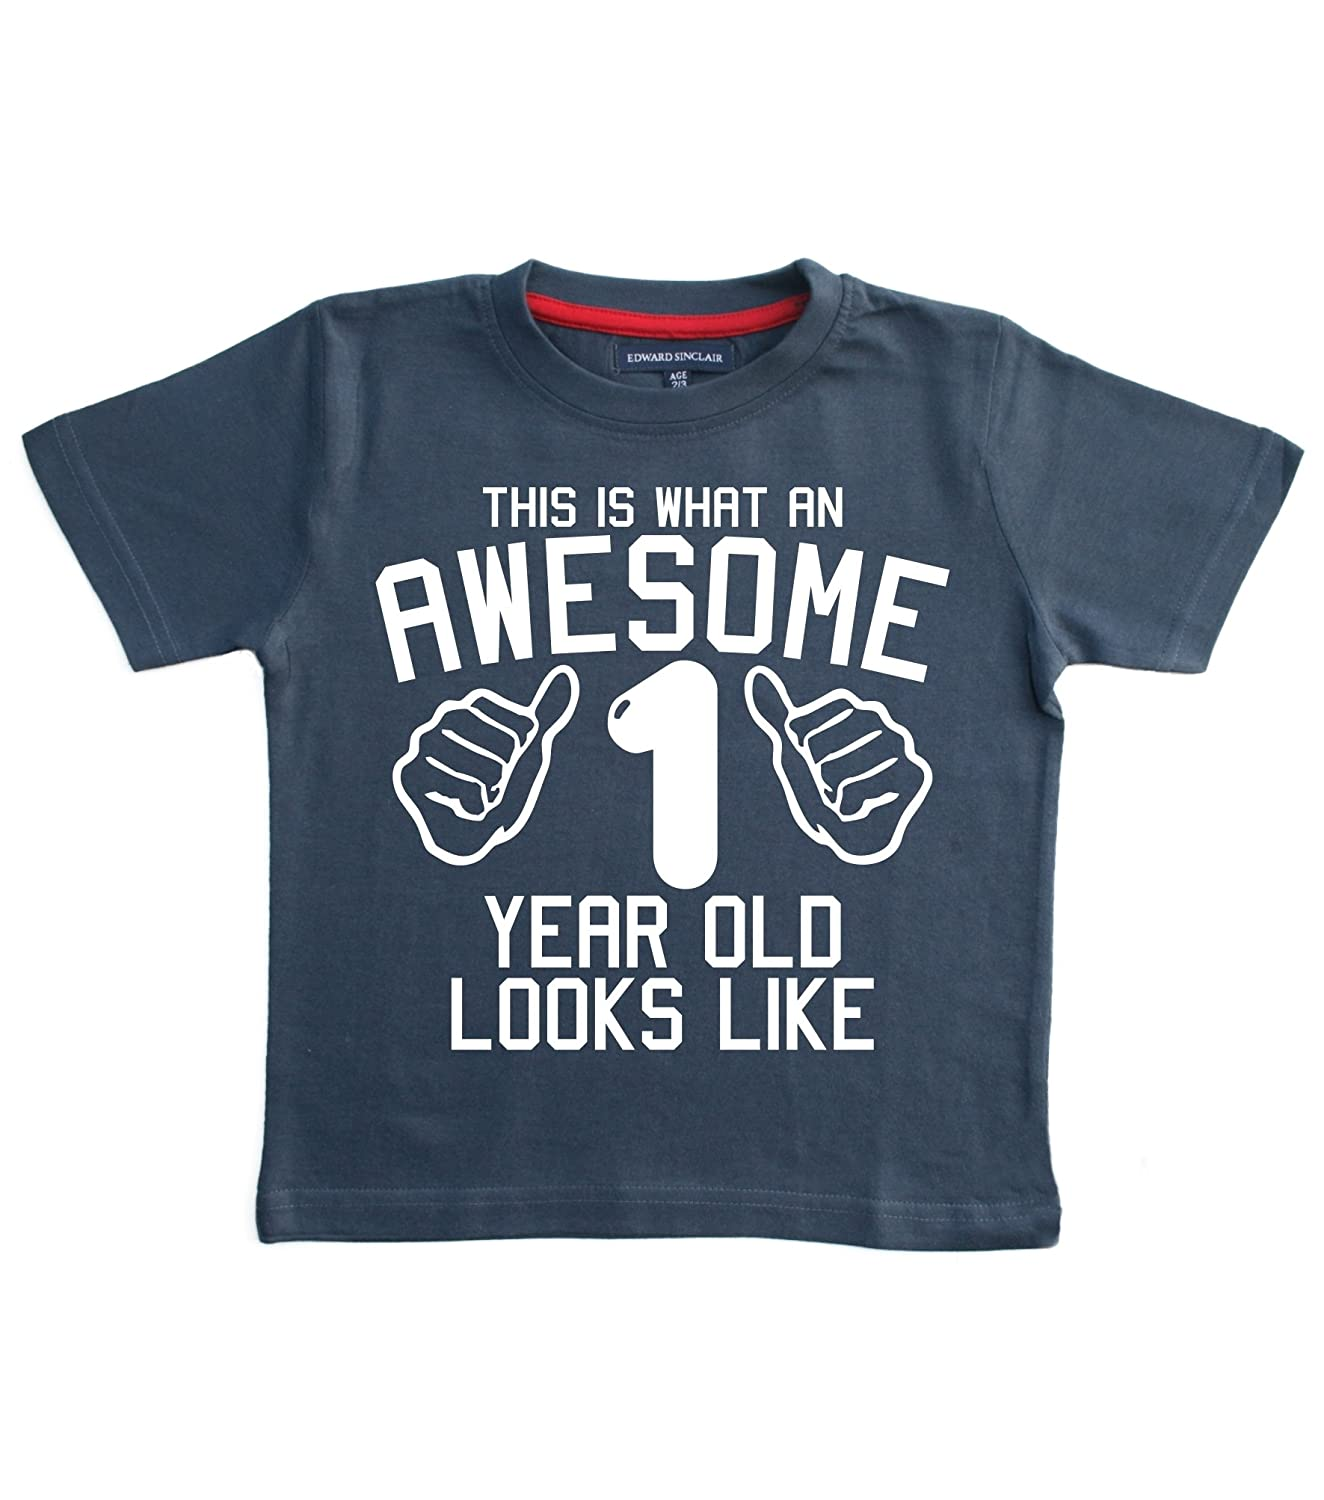 Edward Sinclair Baby Boys' This Is What An Awesome 1 Year Old Looks Like T-Shirt